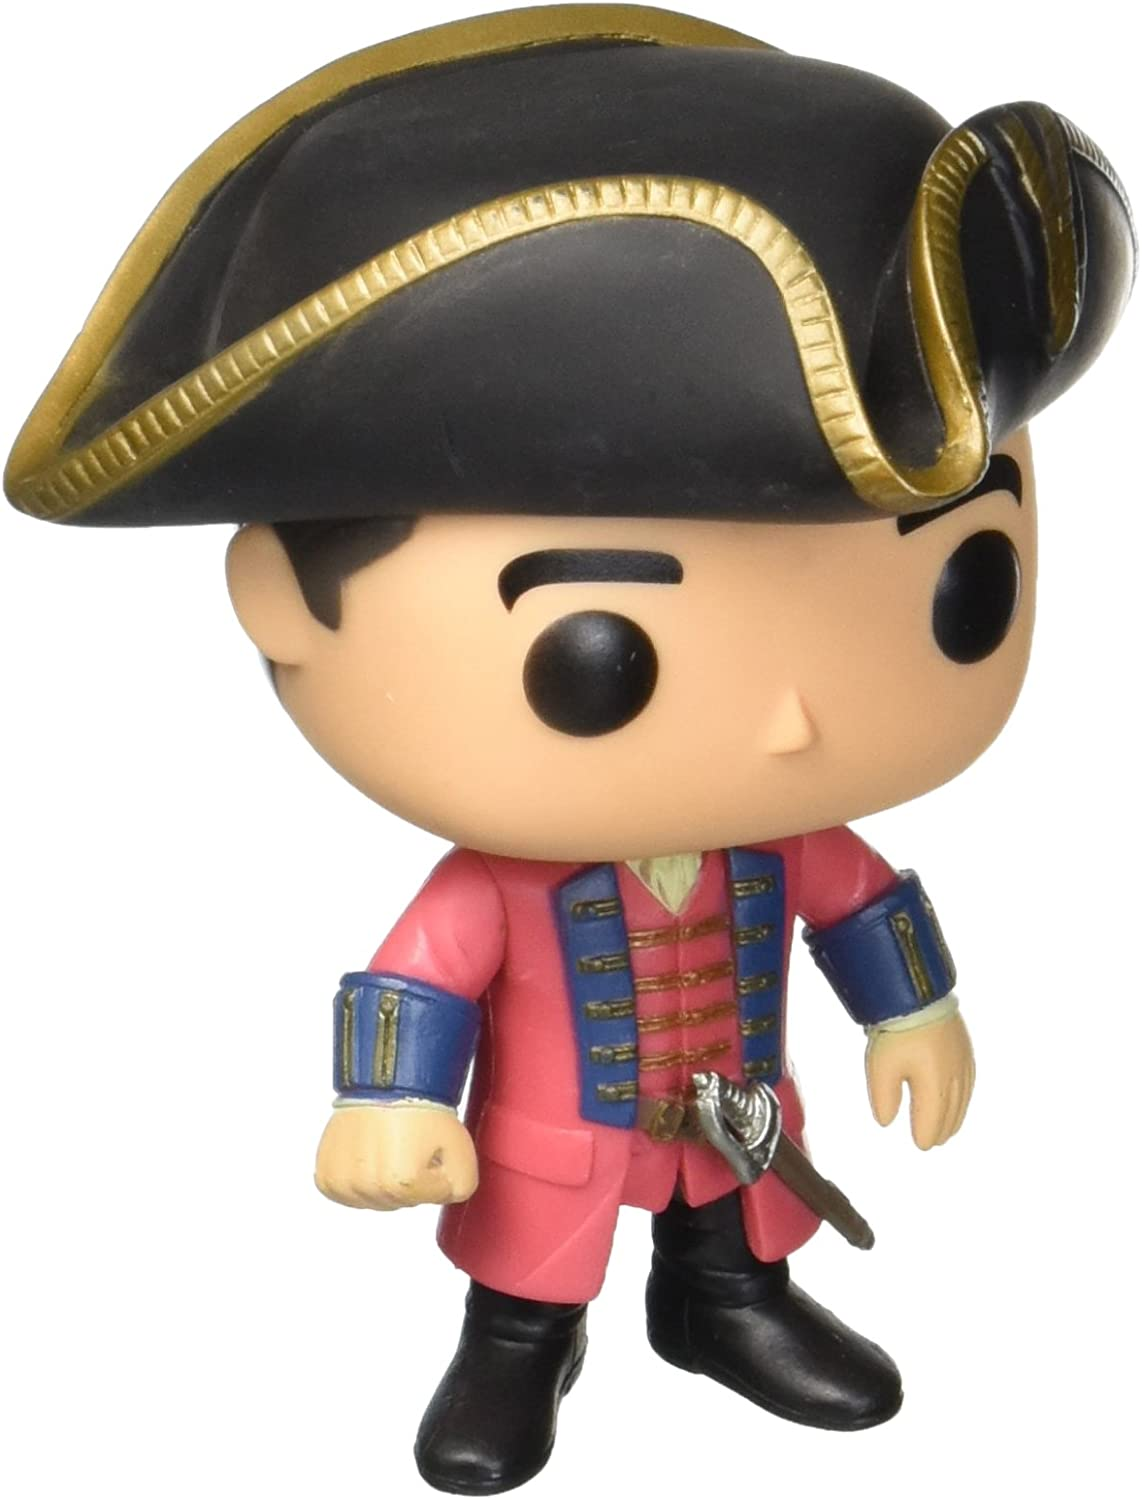 Pop Vinyl Toy  Outlander TV Series  Black Jack Randall 3.75 Inch Collectable Action Figurellectable